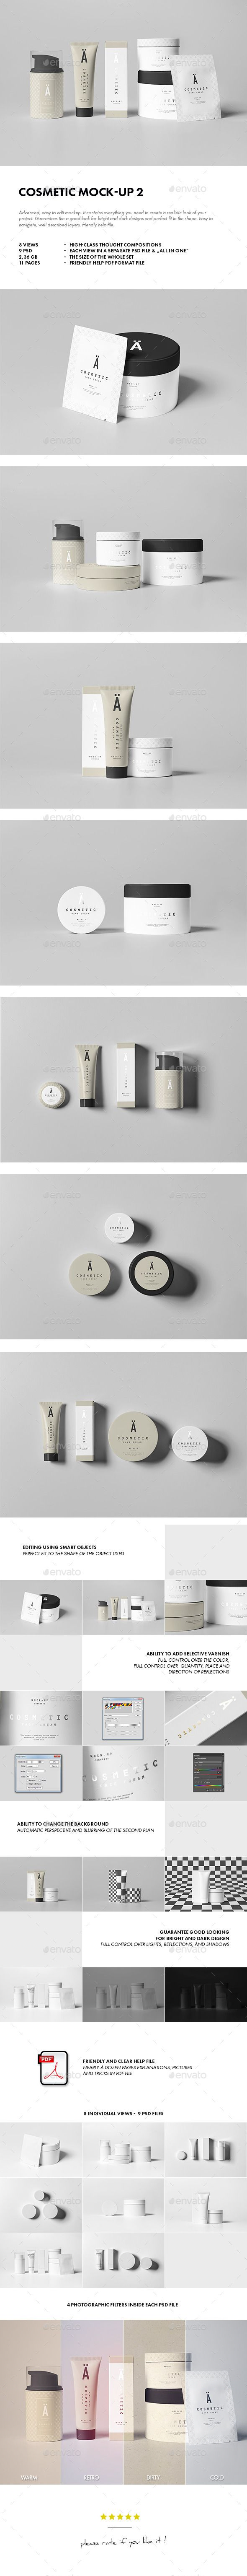 Cosmetic Mock-up 2 - Beauty Packaging #psd #mockup #cosmetics #packaging #beauty #makeup #retail